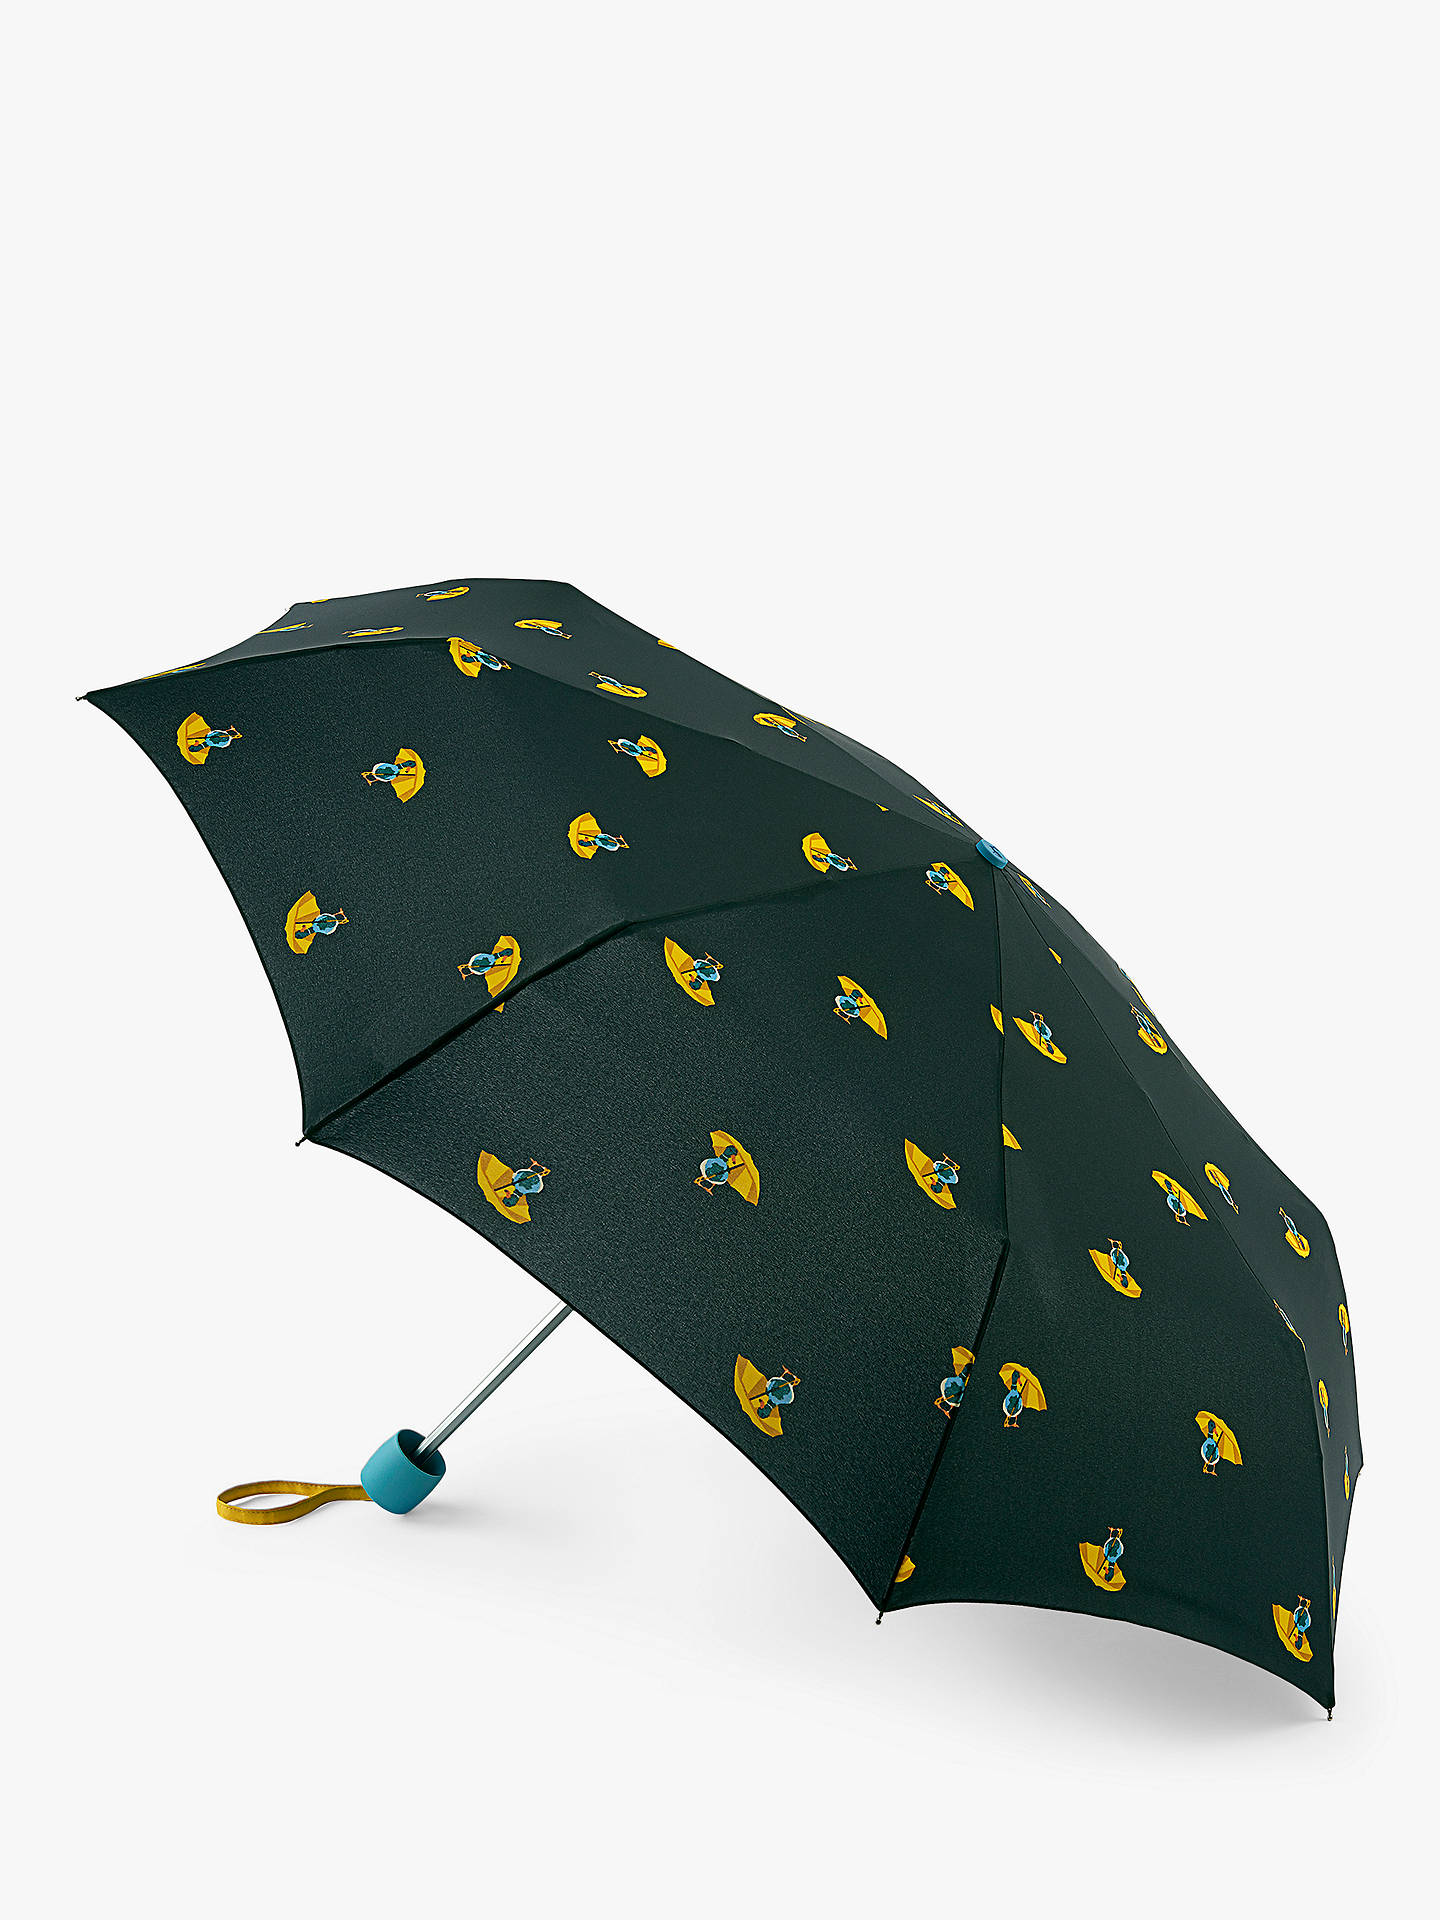 photograph about Umbrella Pattern Printable Free titled Joules Umbrella Ducks Print Telescopic Umbrella, Correct Armed forces/Multi